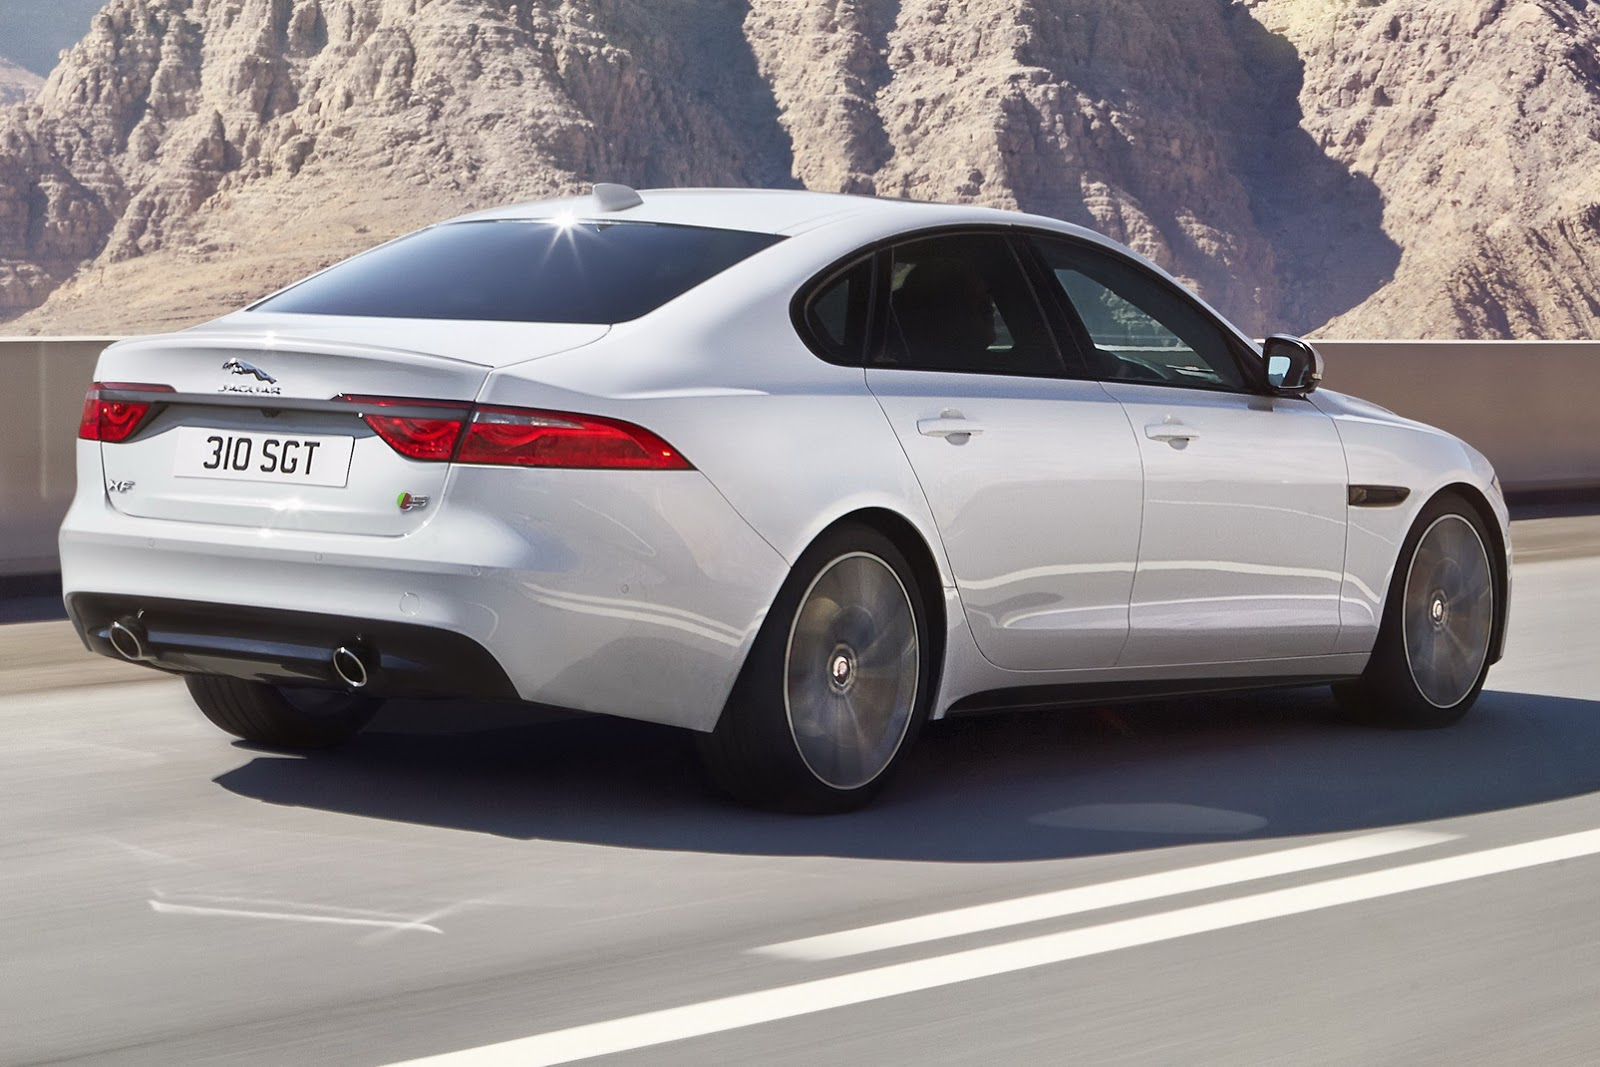 jaguar 39 s 2016 xf may be all new but it looks overly familiar carscoops. Black Bedroom Furniture Sets. Home Design Ideas